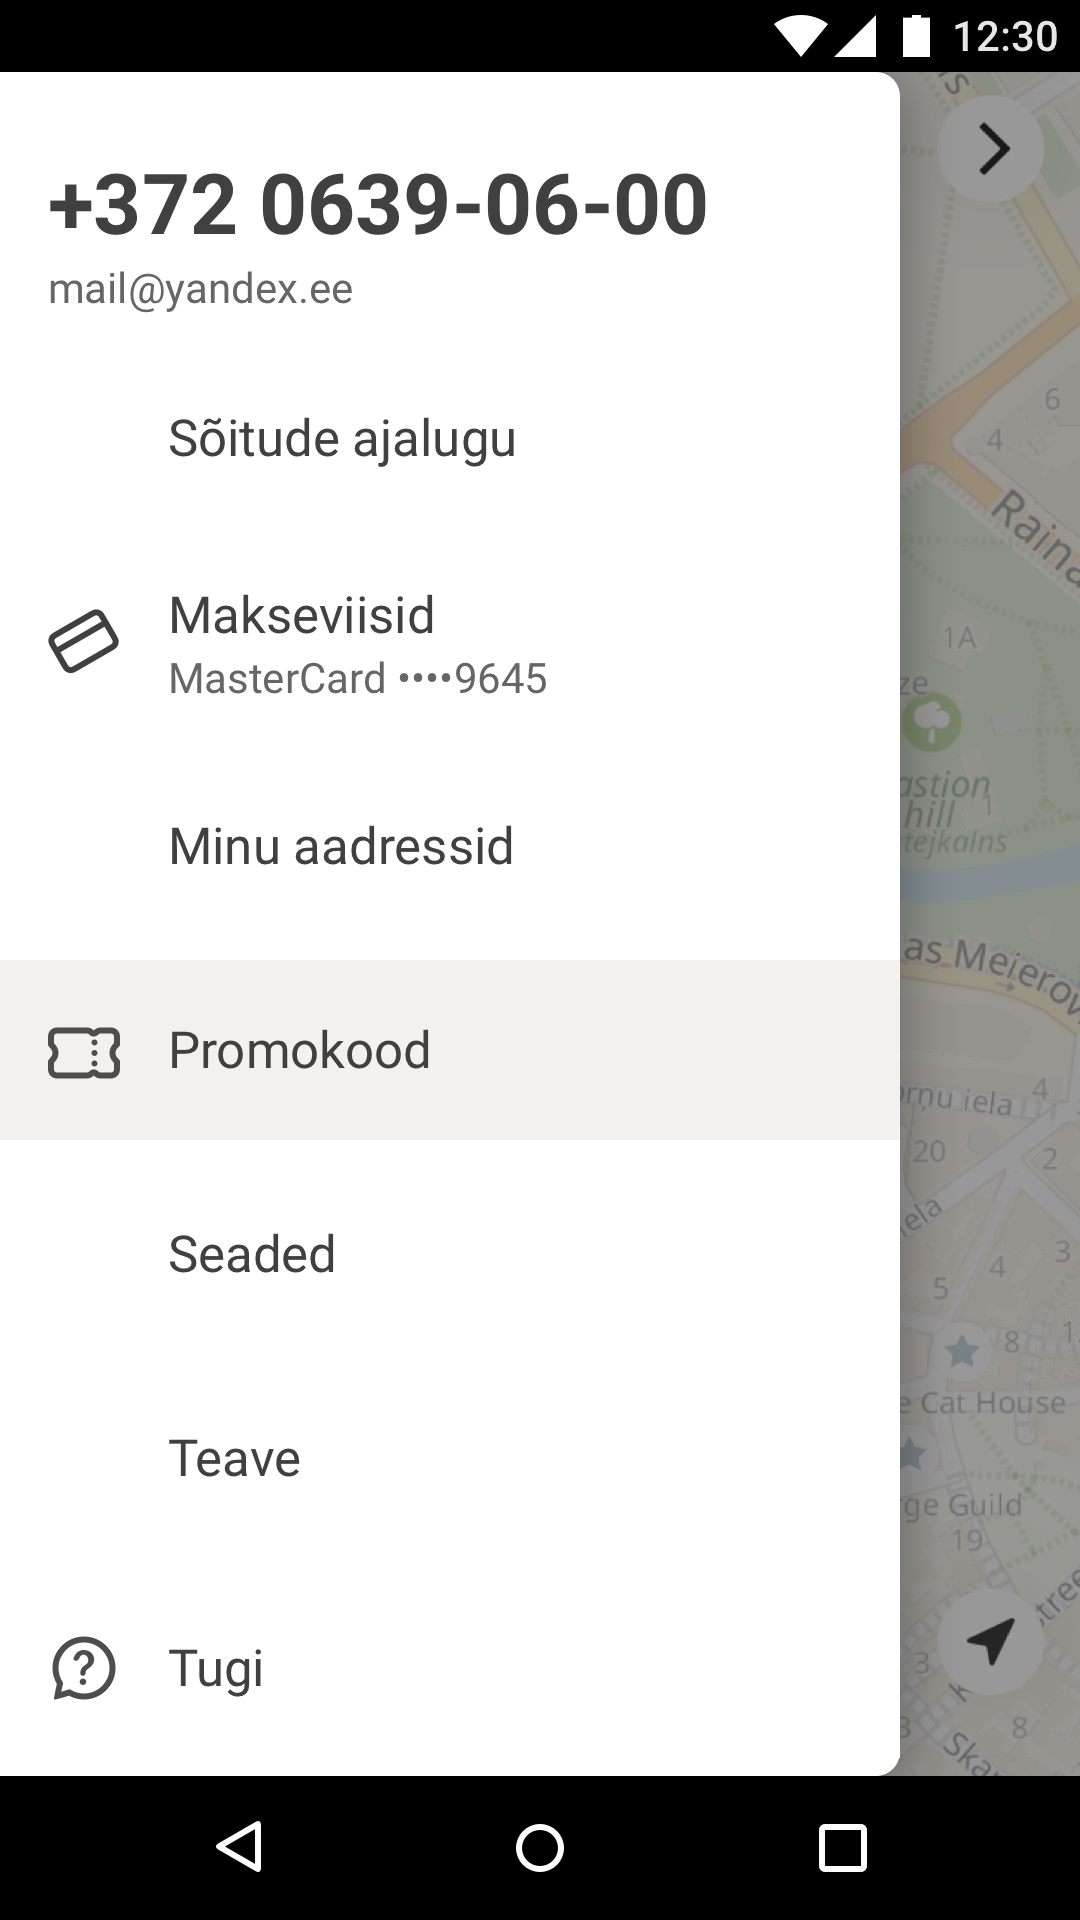 Promotion Rules  Promo Code Terms — Yandex Taxi